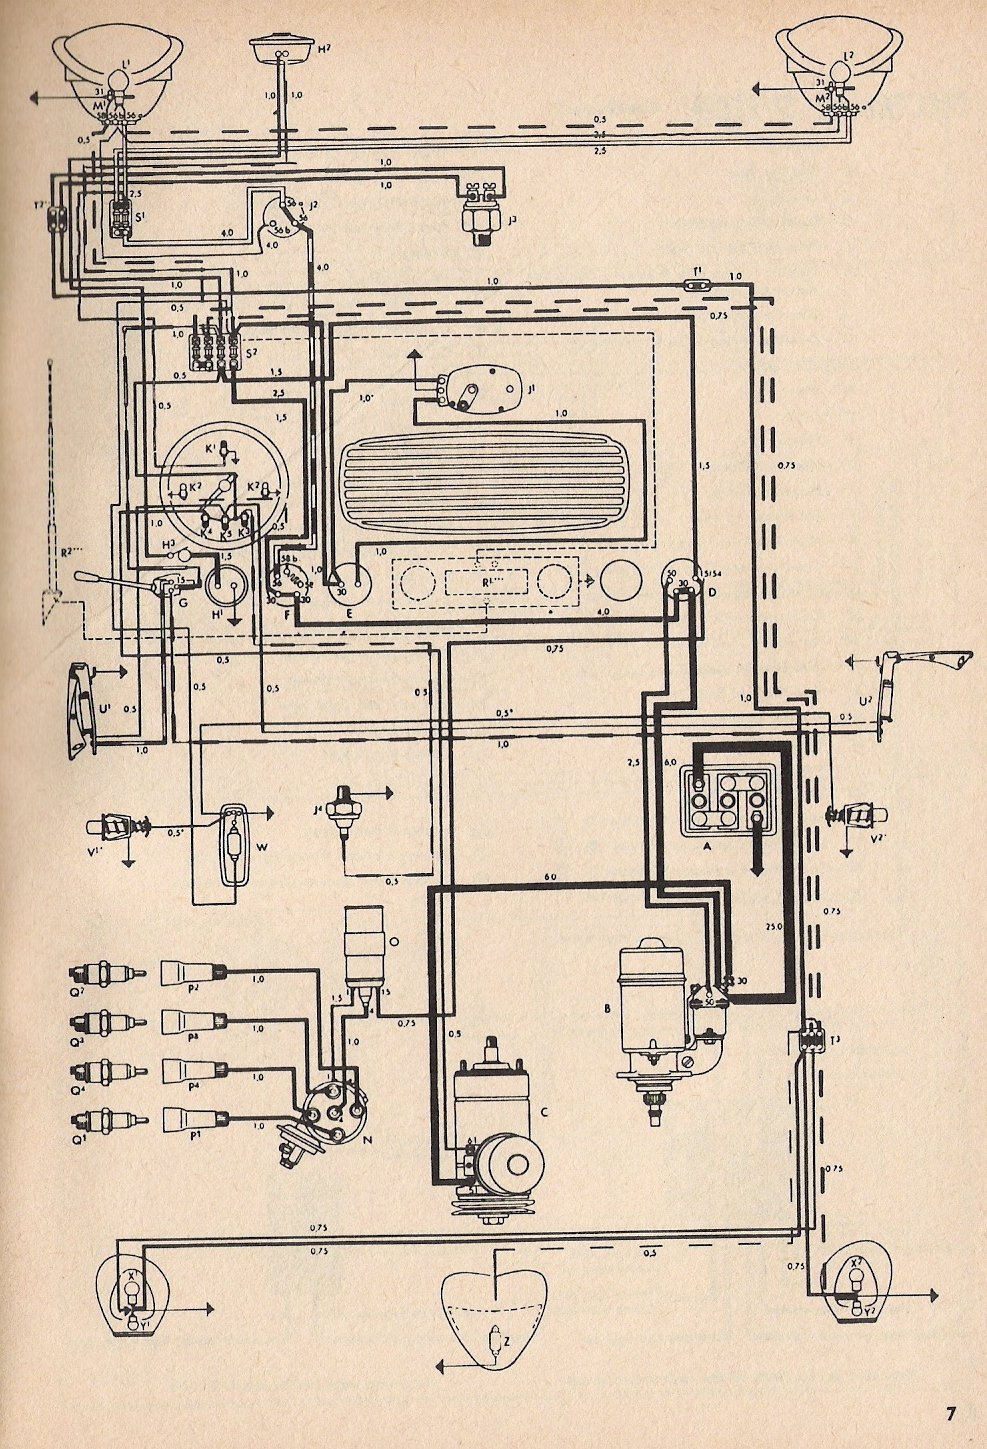 1963 Cadillac Seat Control Wiring Diagram All Kind Of Avanti Thesamba Com Type 1 Diagrams 1962 Vacuum